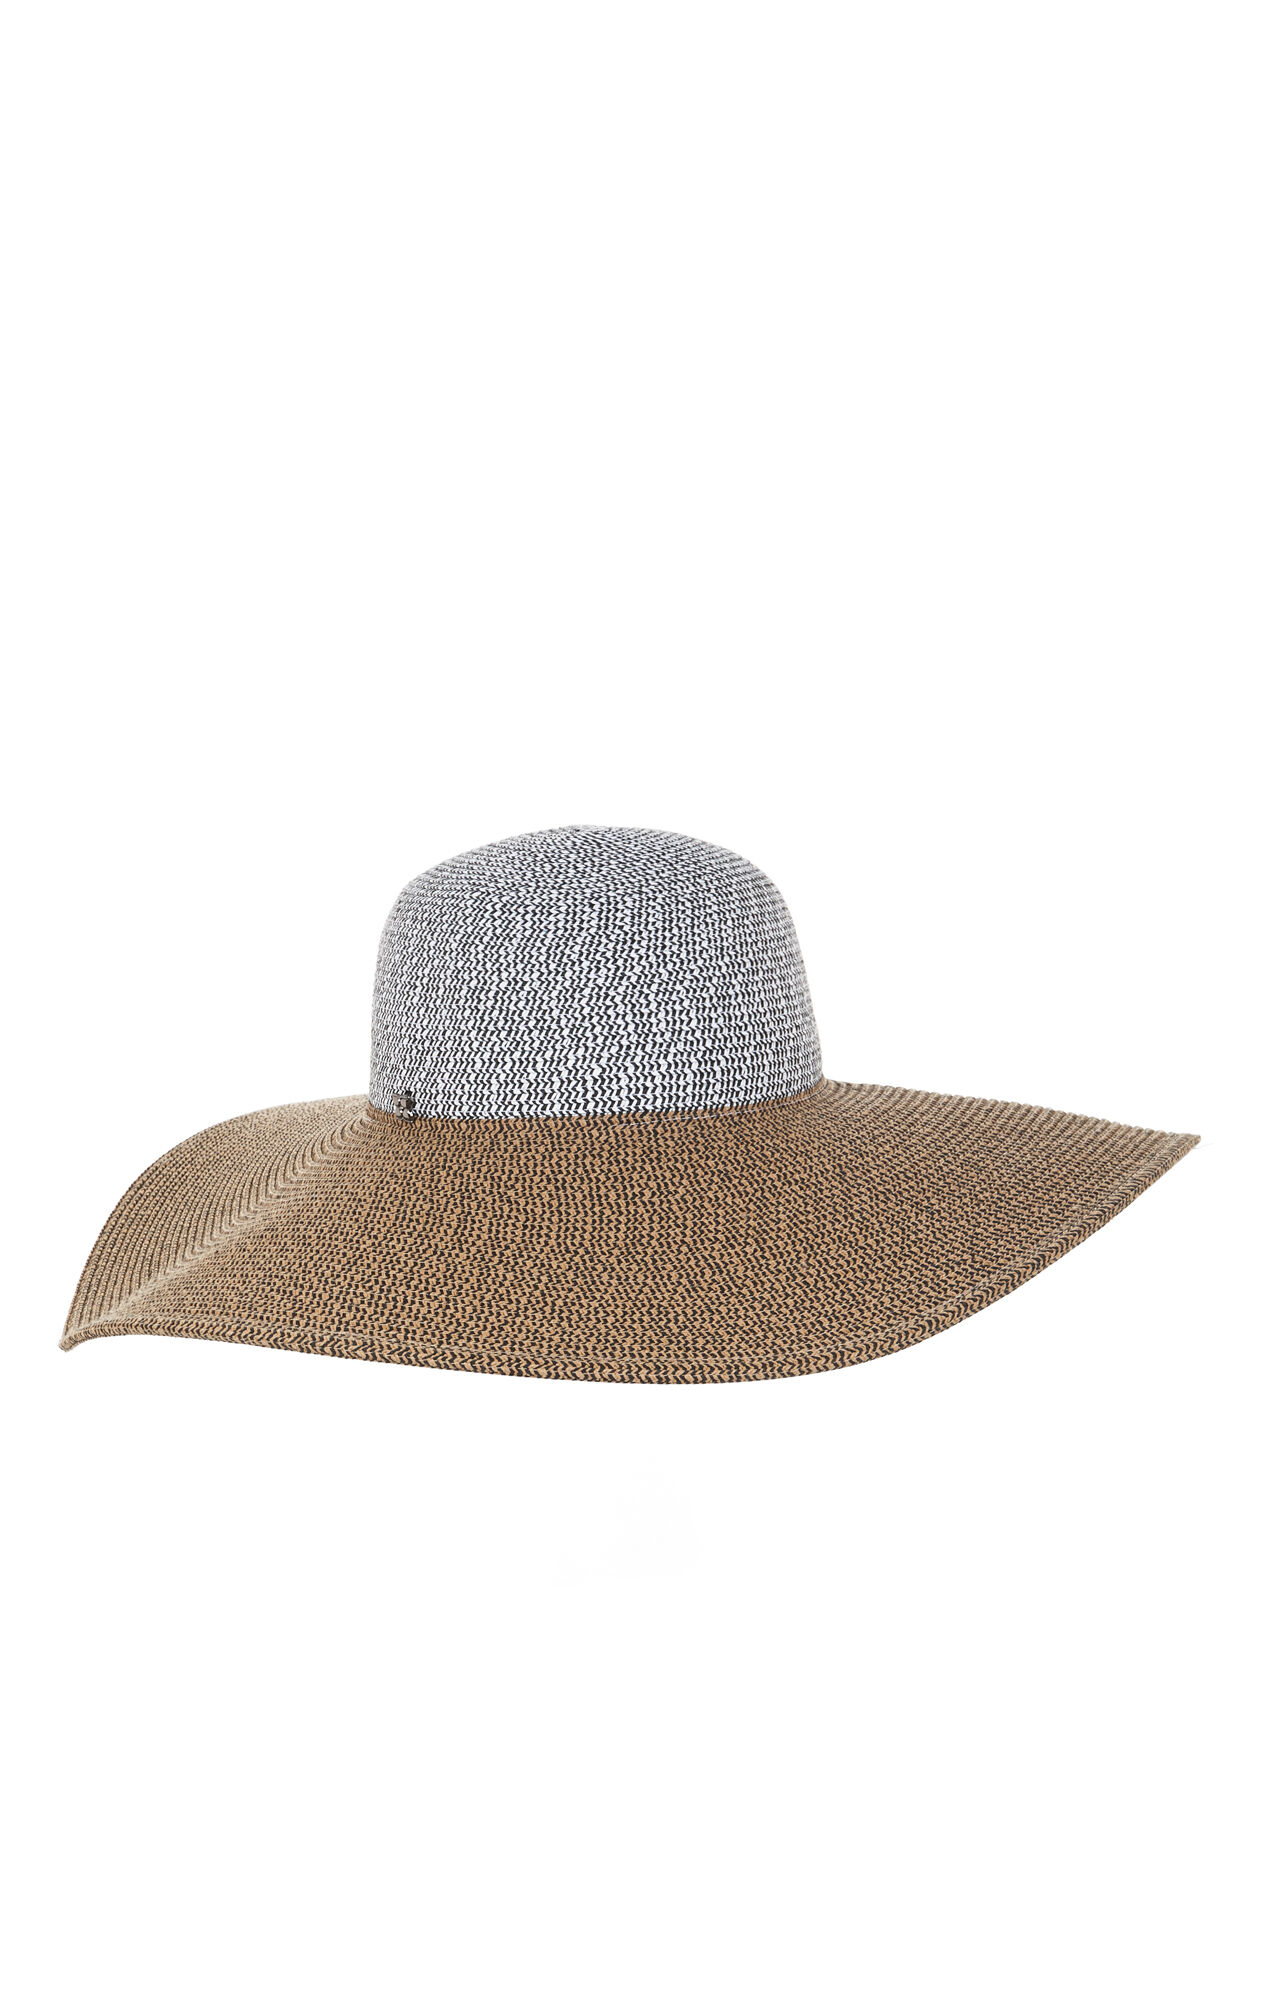 Chic Floppy Hat